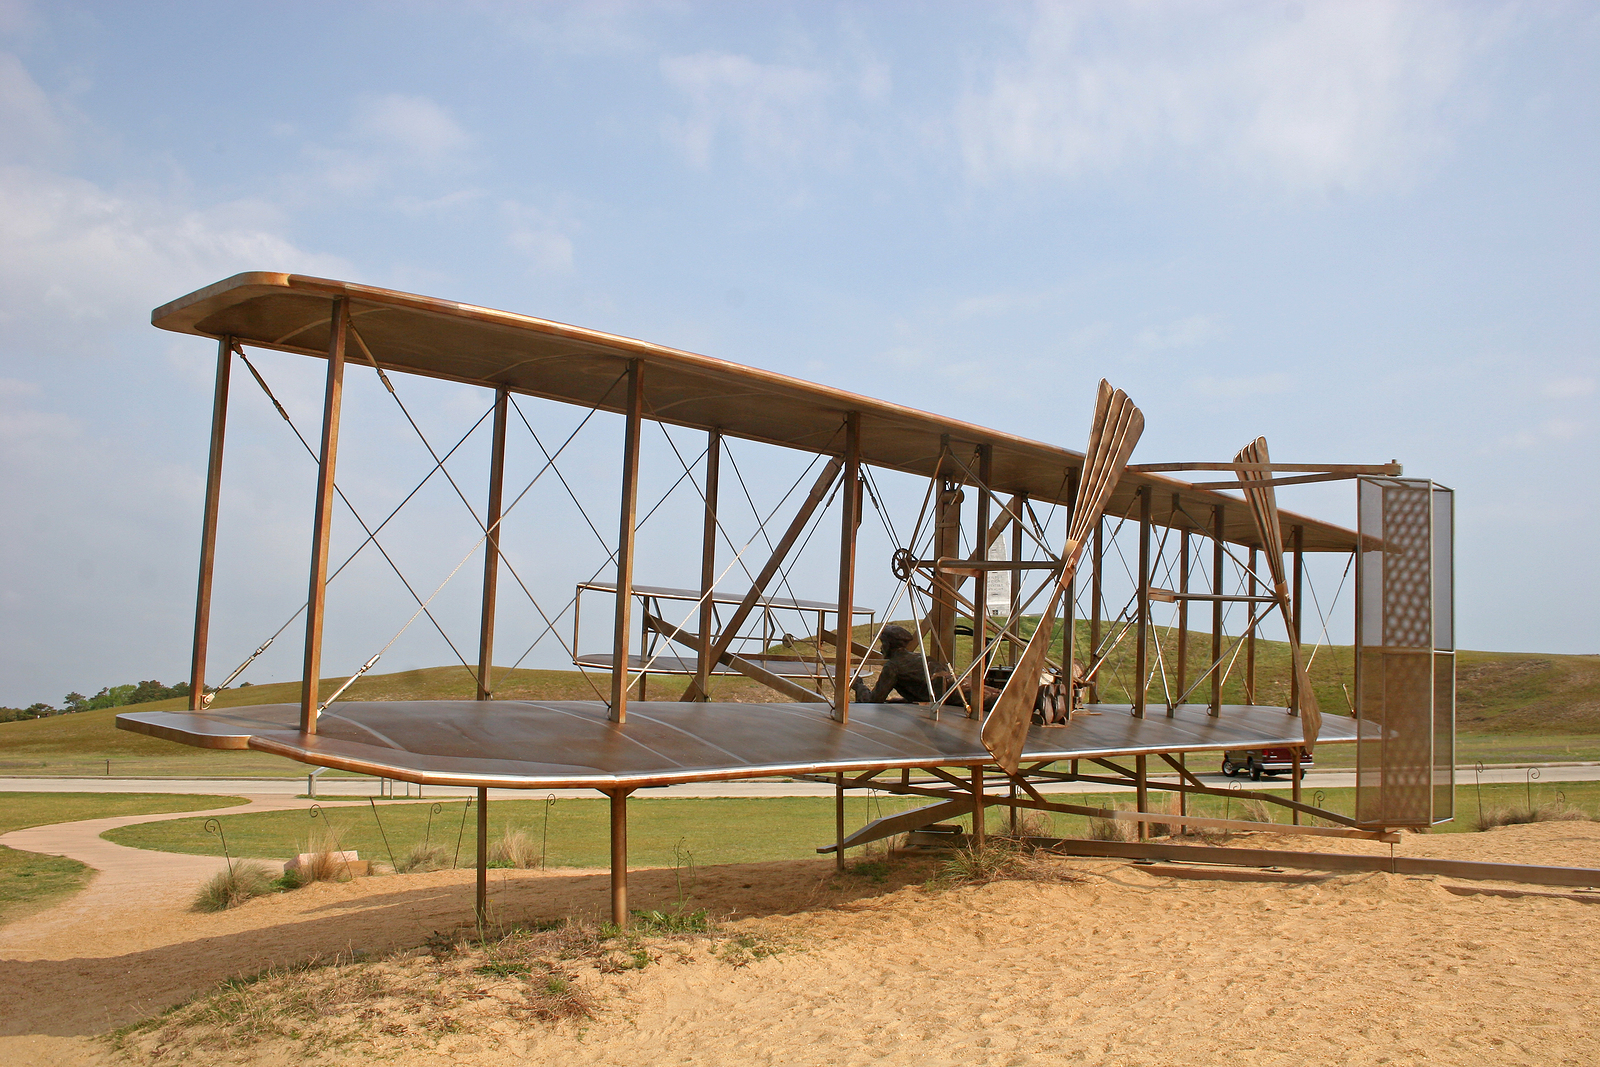 History of flight for children | The Wright Brothers for KS1